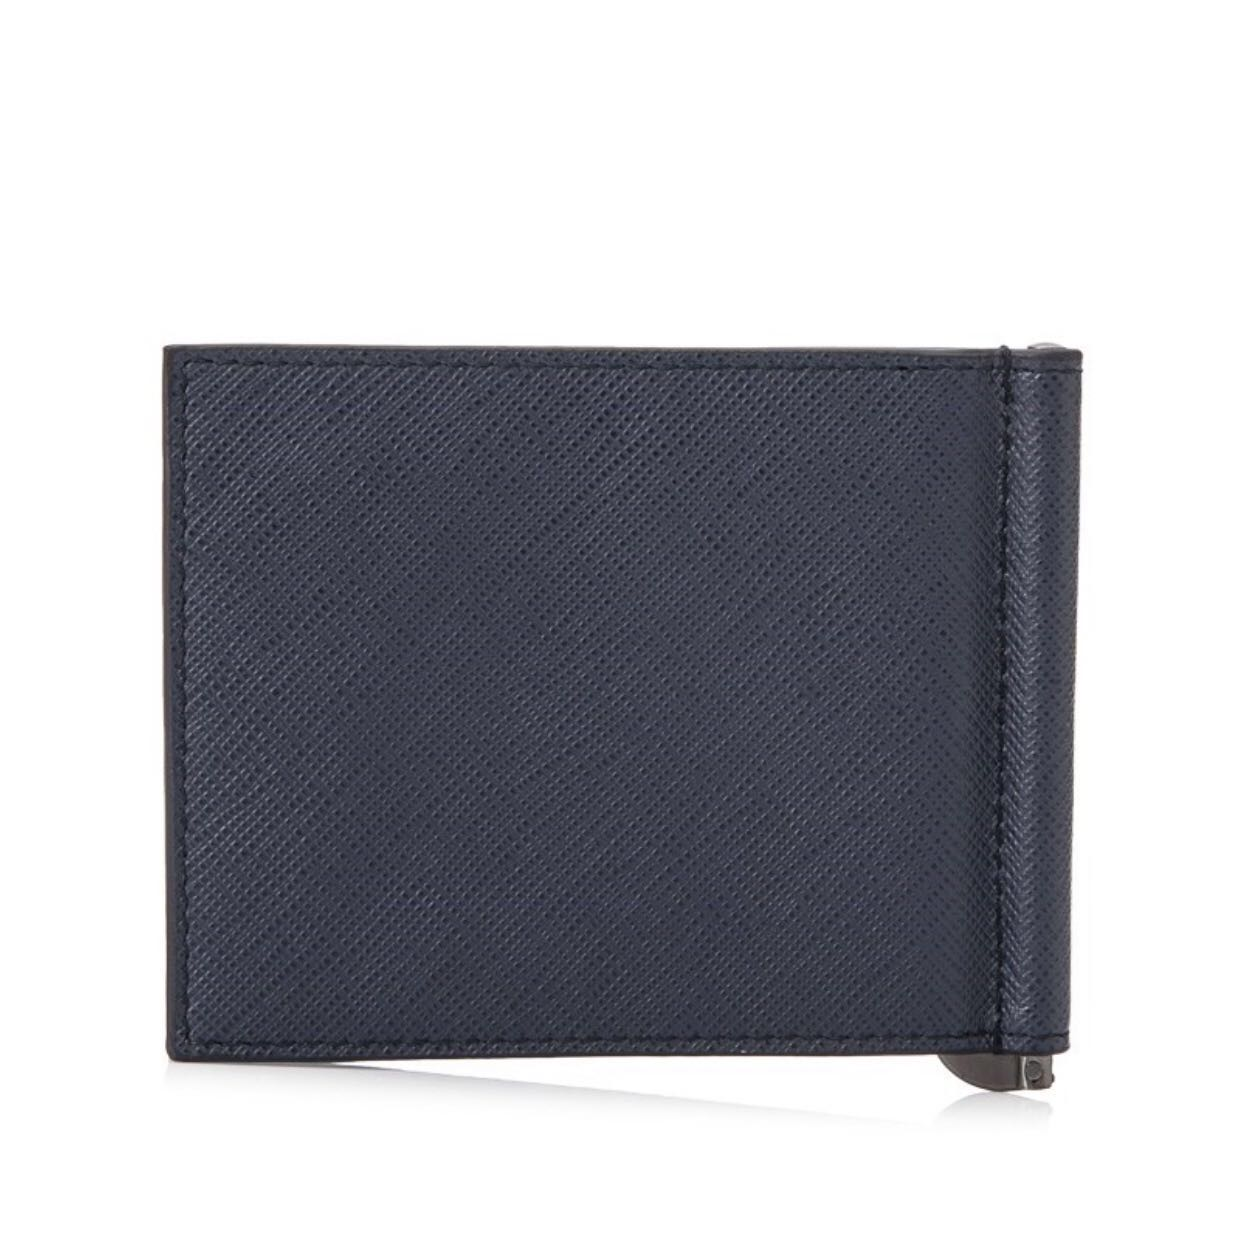 1bbd81d8409d Prada Saffiano Stripe Bifold Wallet, Men's Fashion, Bags & Wallets, Wallets  on Carousell